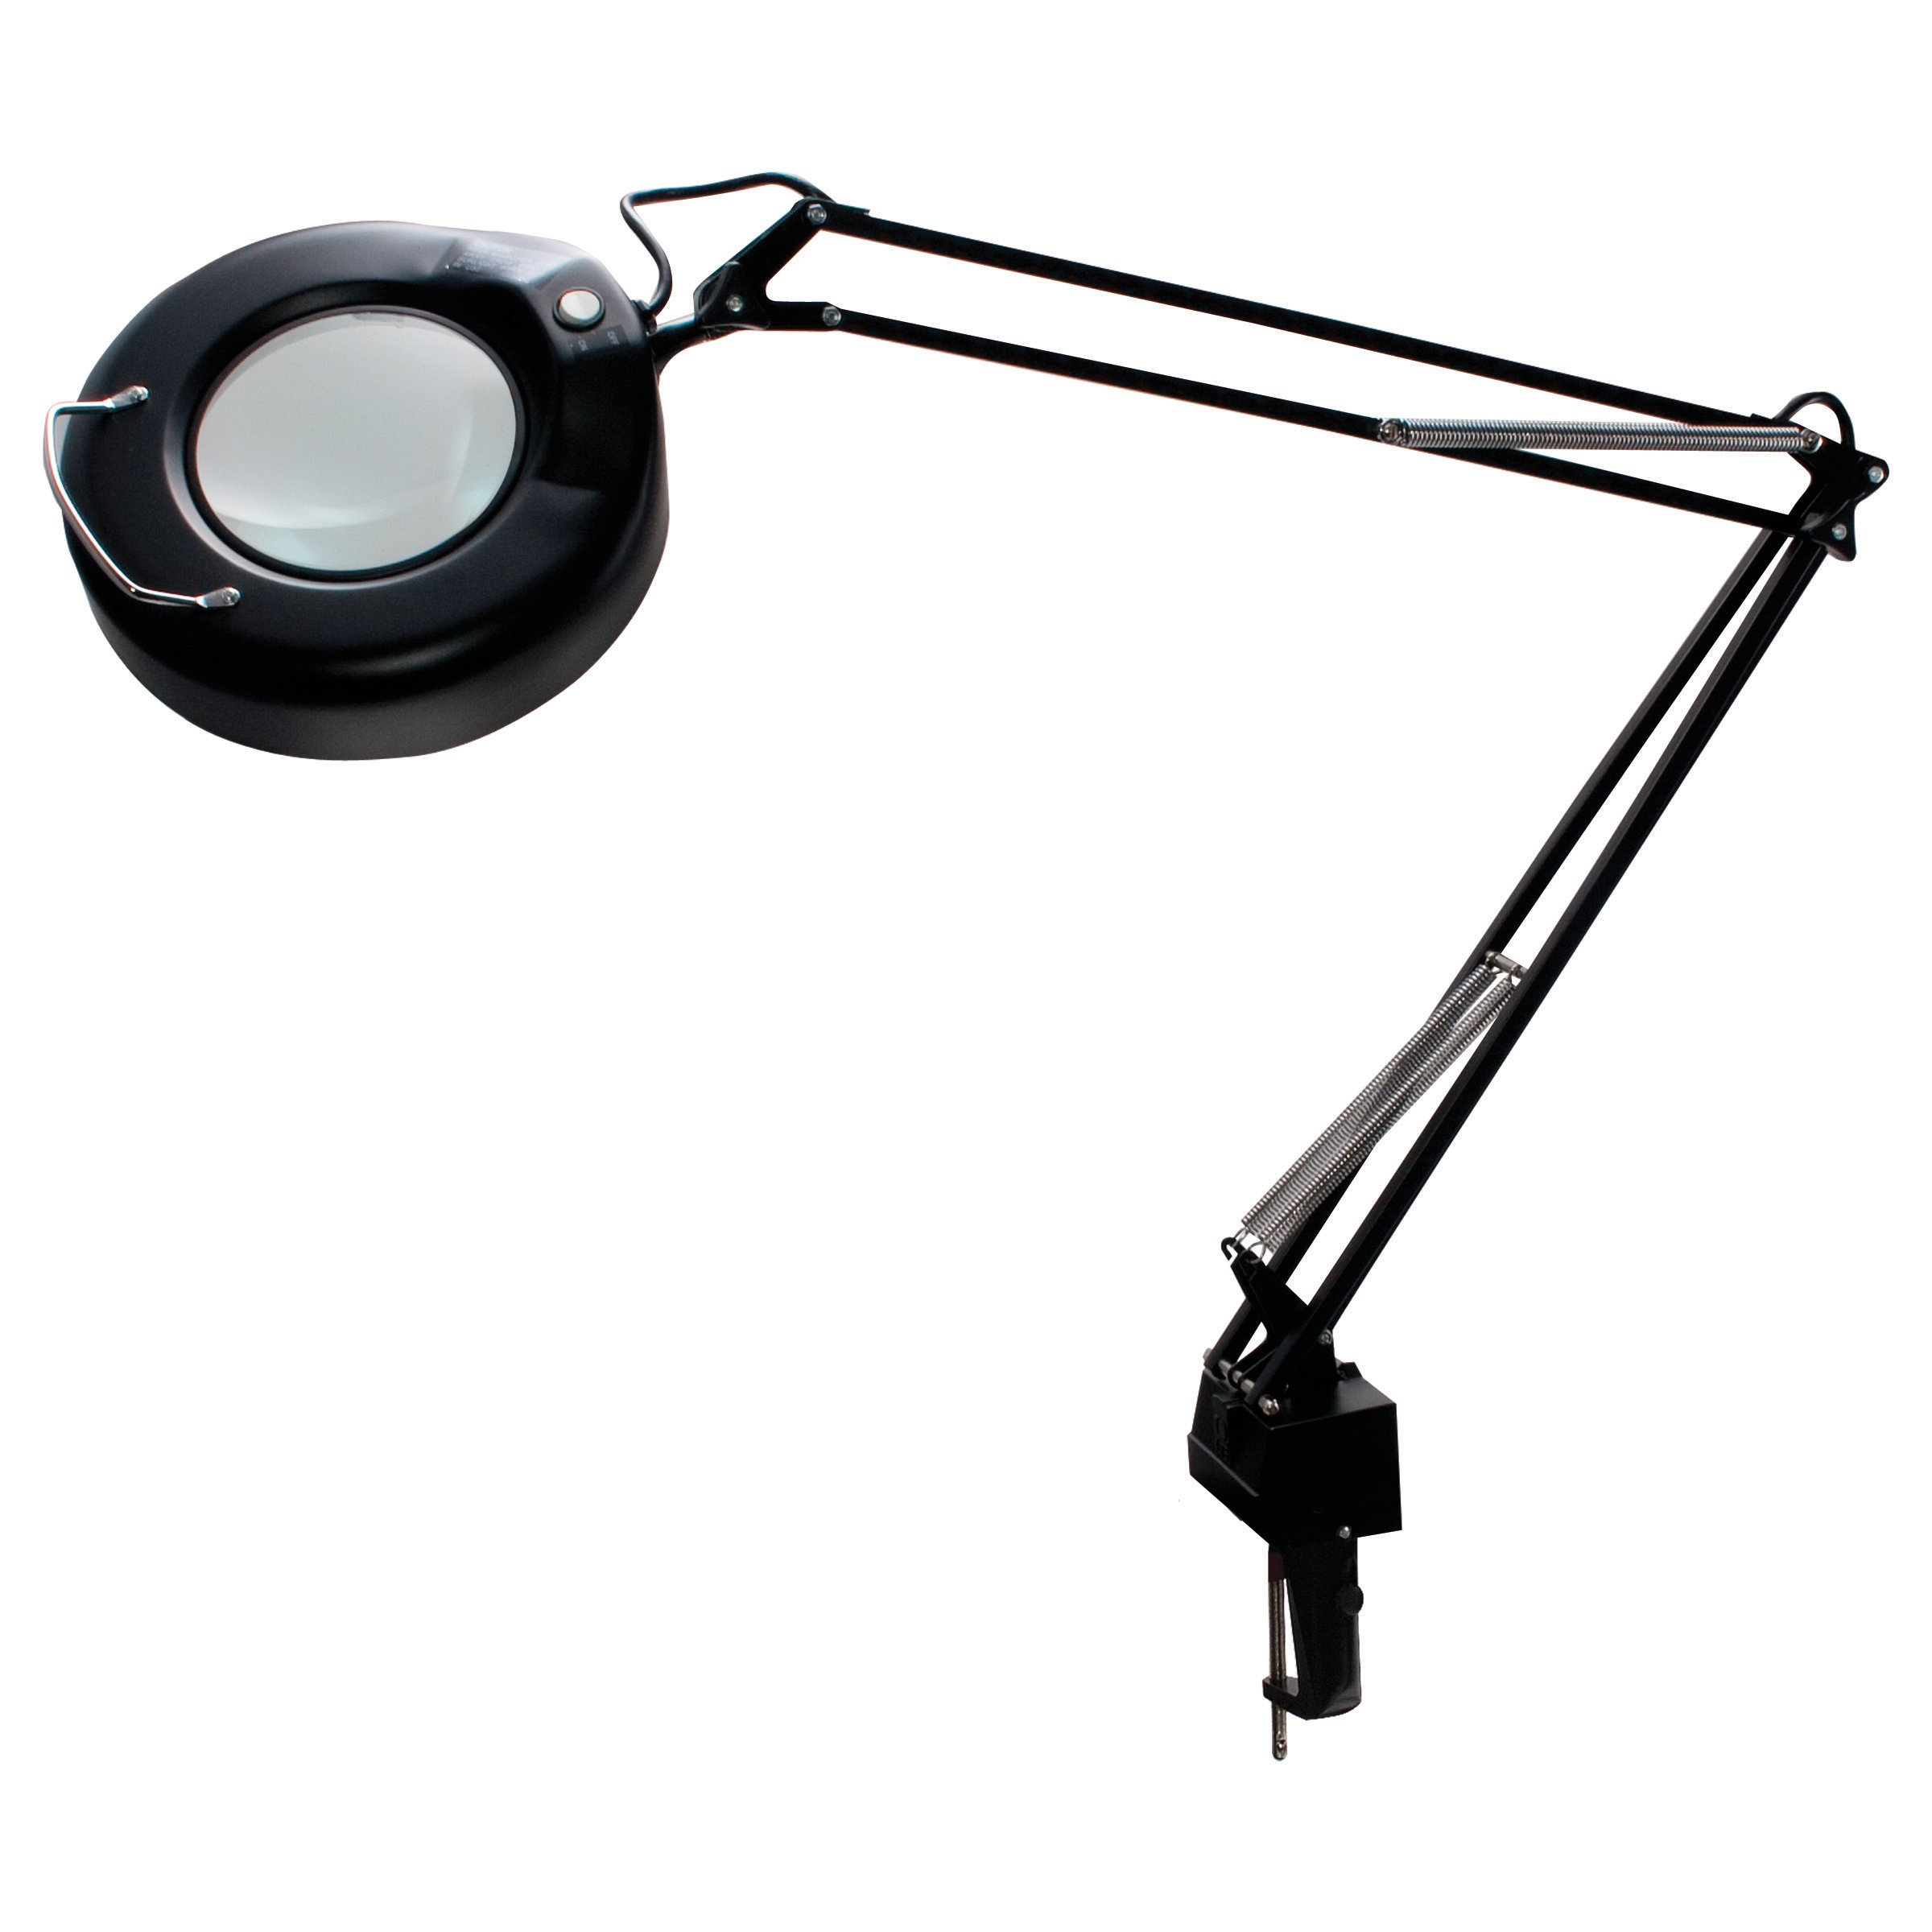 LEDU L745BK Economy Magnifier Lamp, 38-1/2'' Arm Reach, Black by Ledu